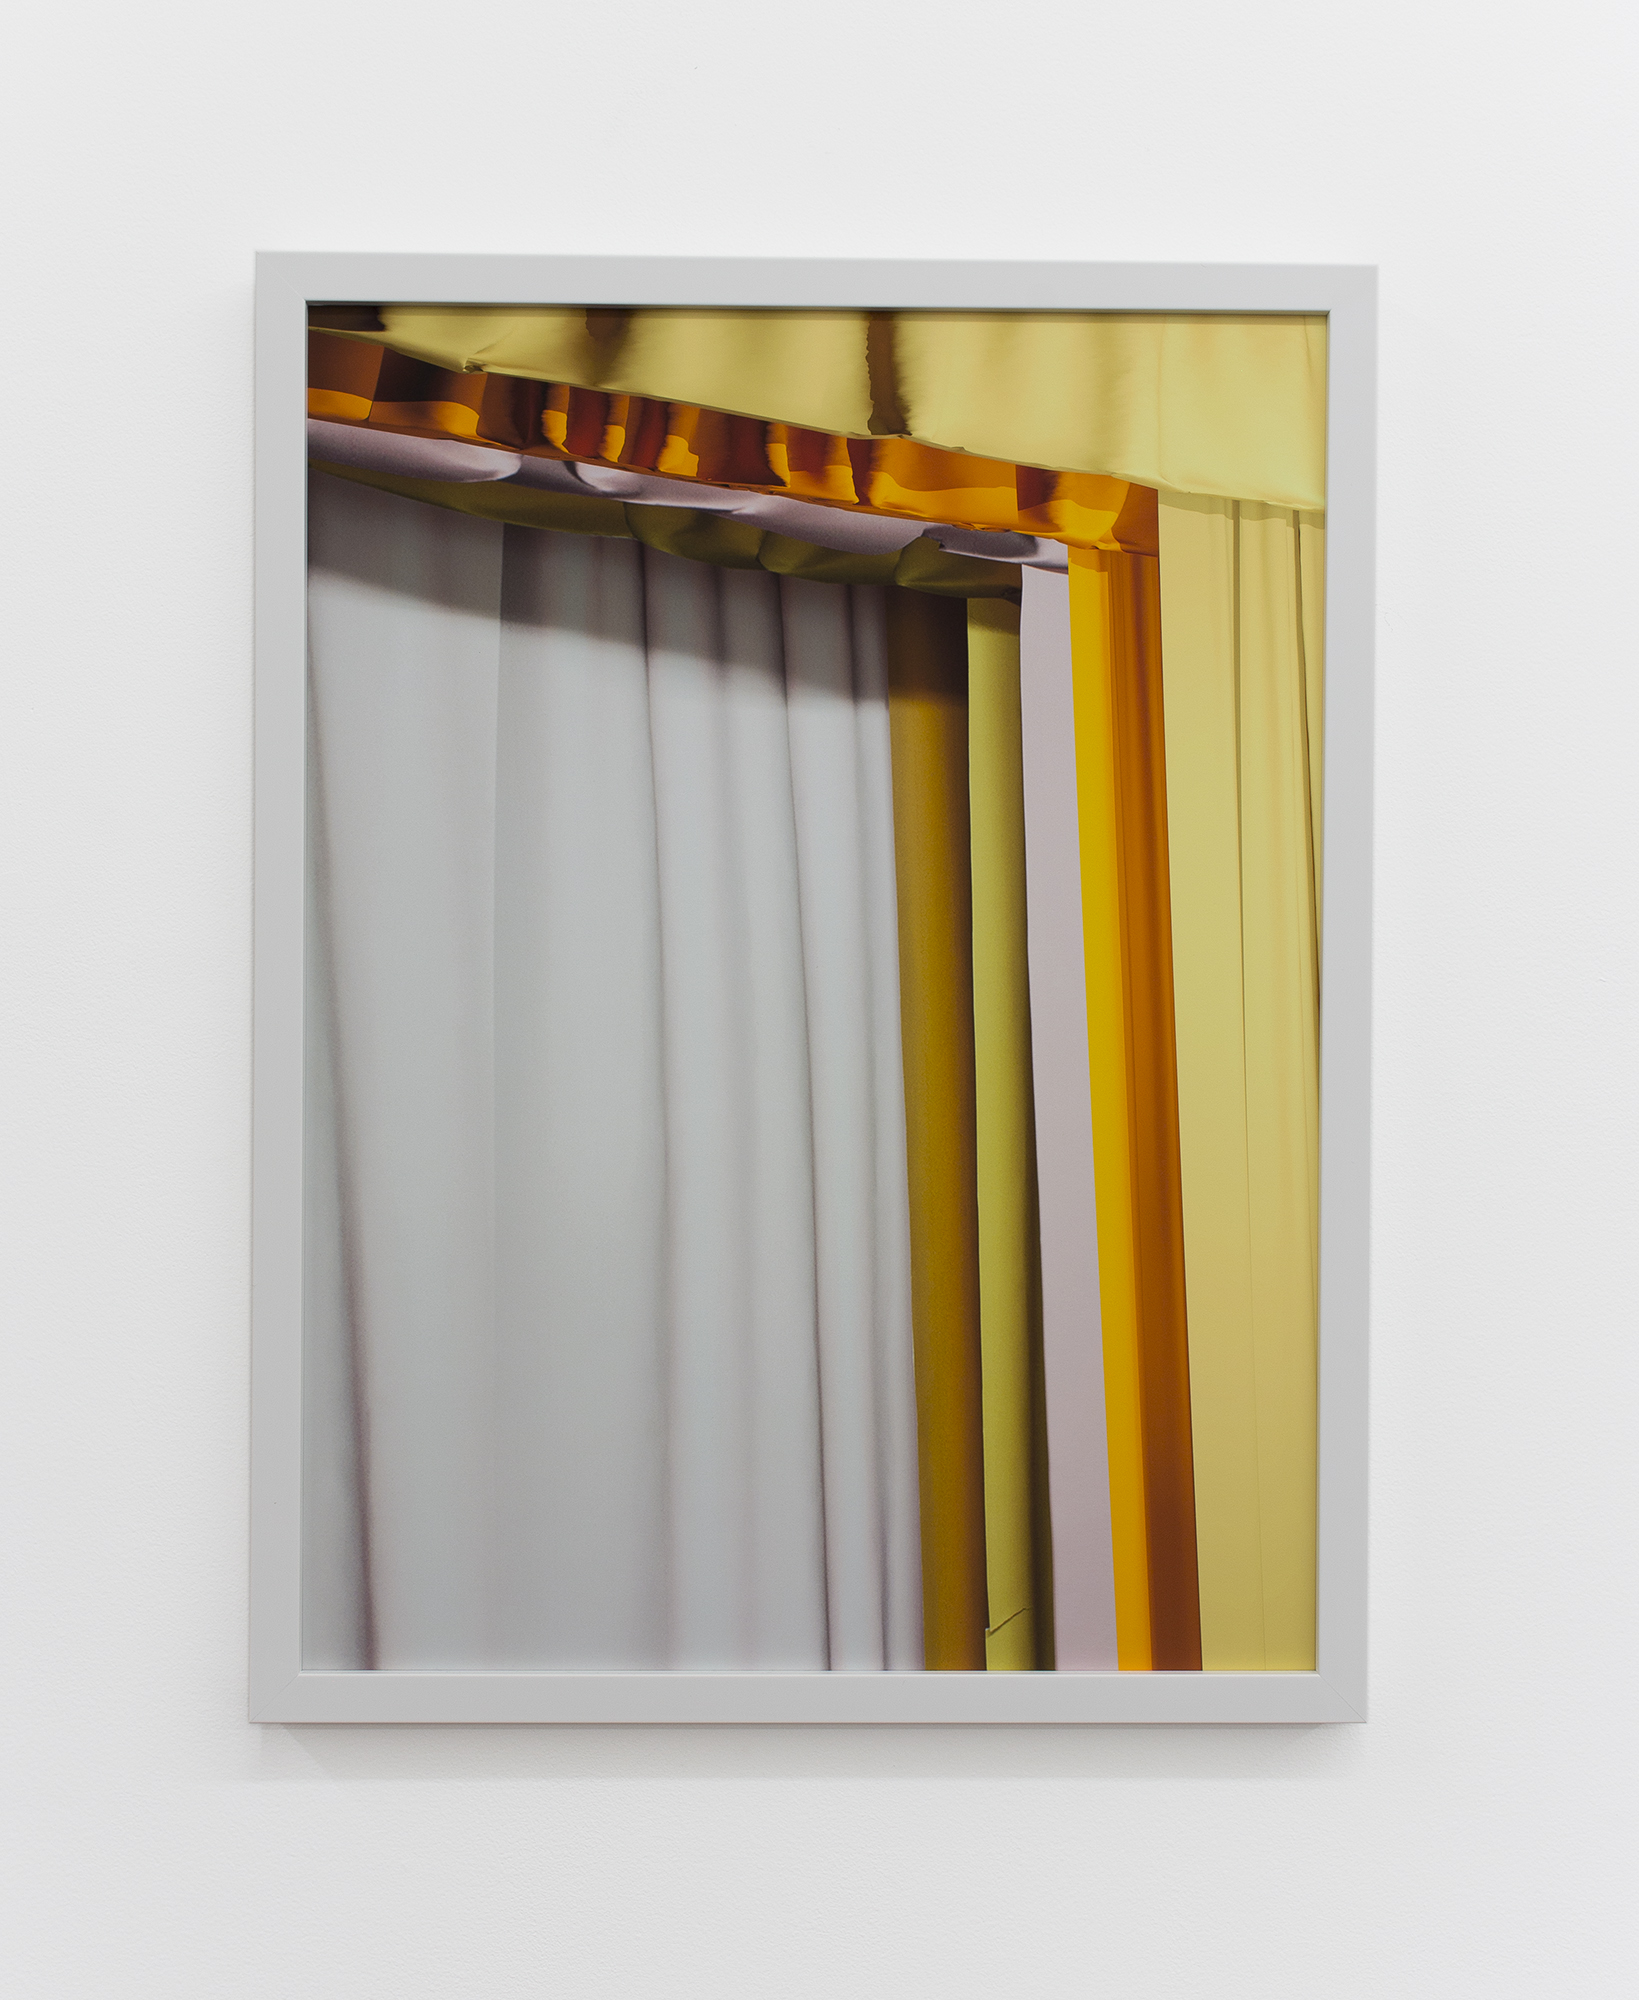 installation view of  An Imitation of Truth,  archival pigment print, 2017  image courtesy of ADDS DONNA